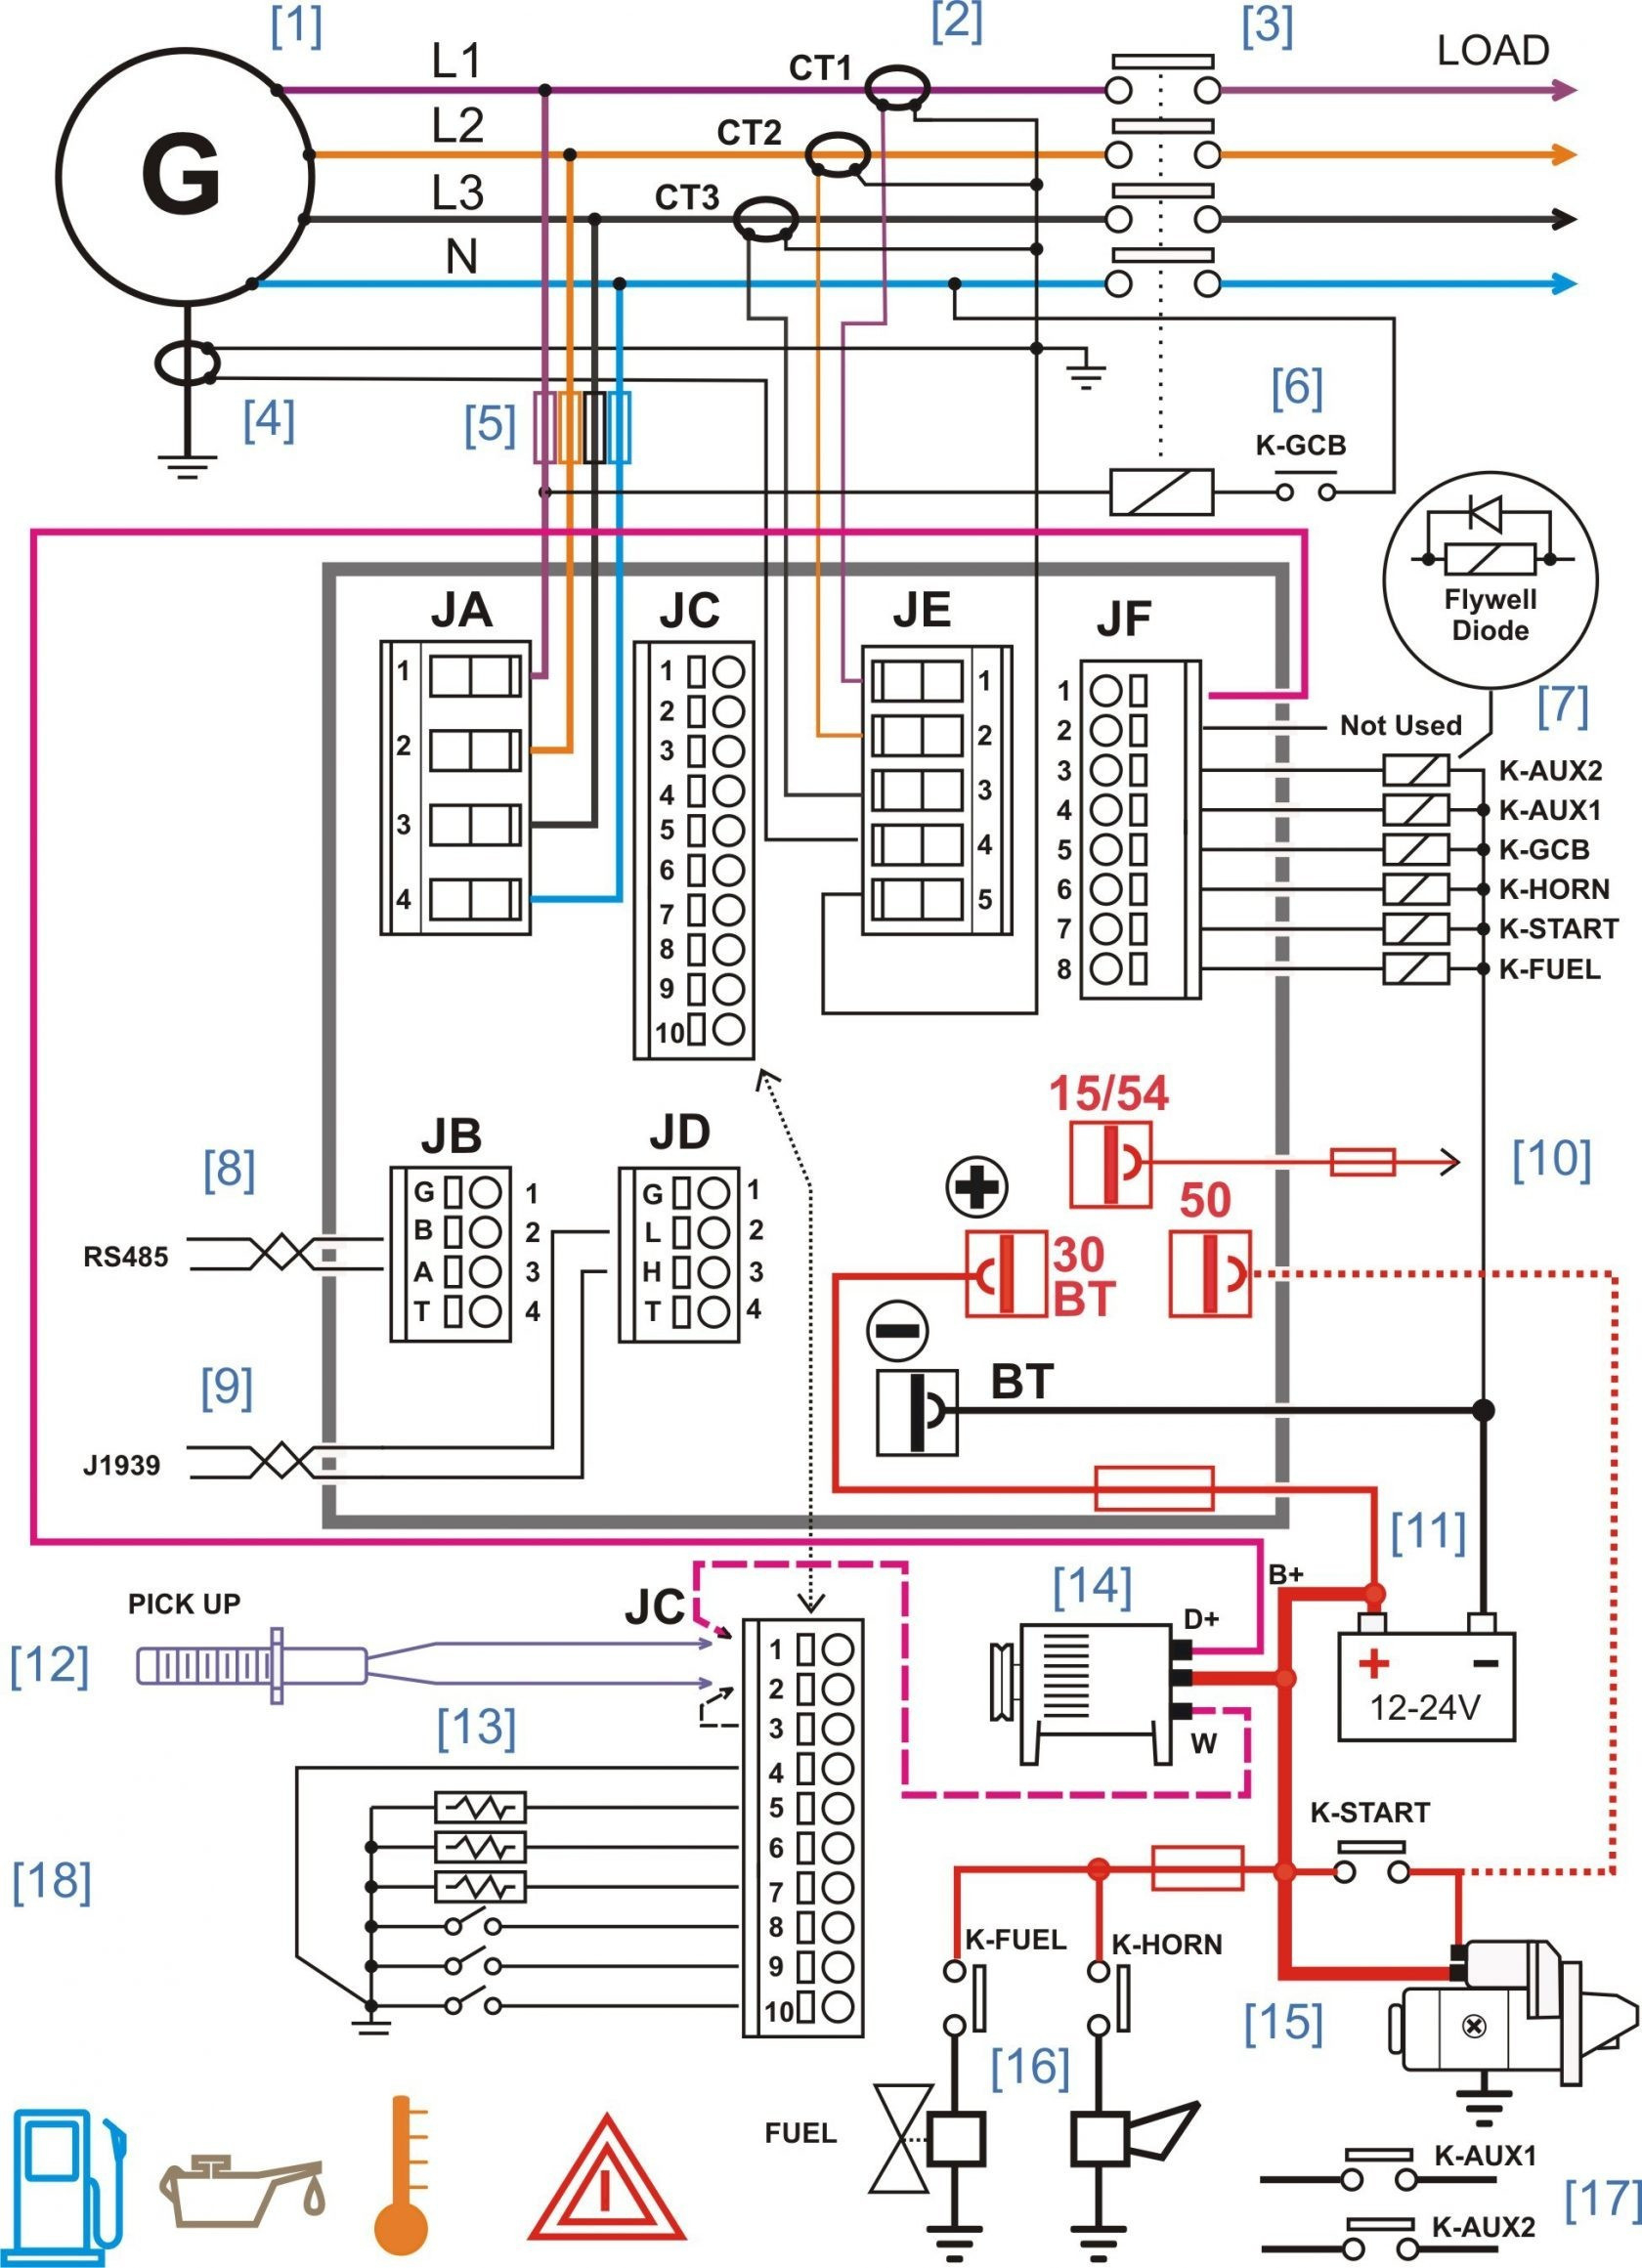 Wiring Diagram For Peterbilt Peterbilt 386 Cb Peterbilt 386 Wiring on